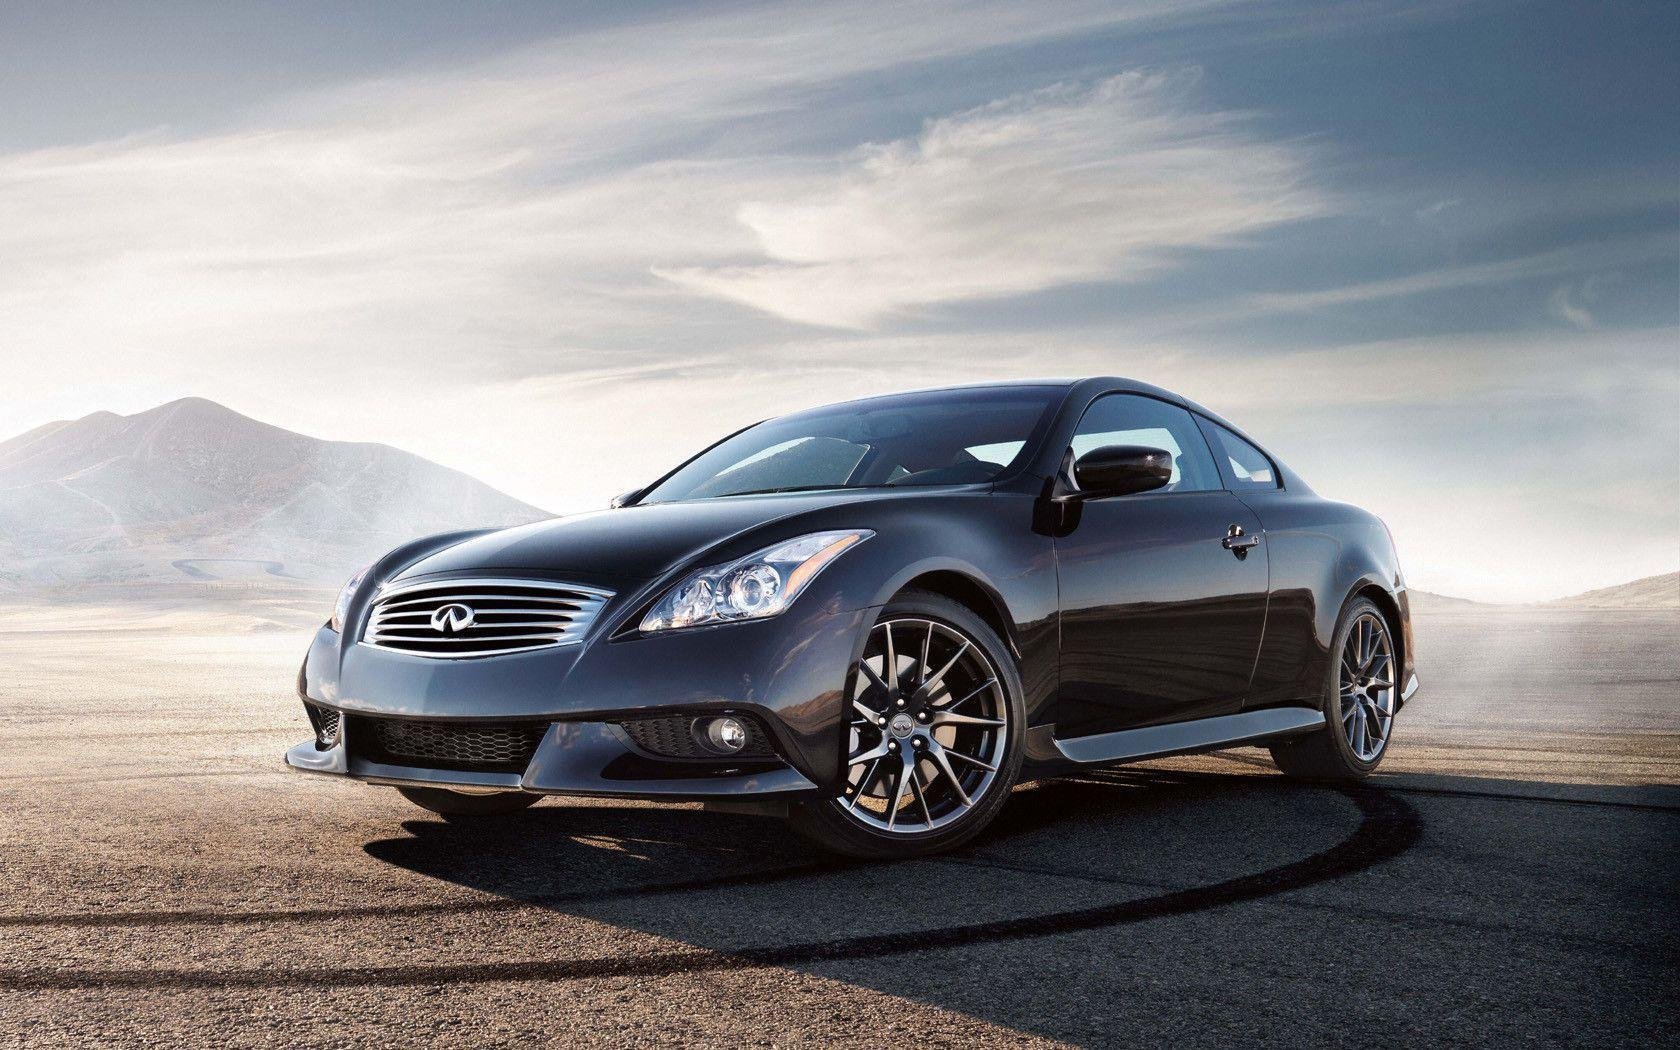 2011 Infiniti G37 IPL Coupe - Free Widescreen Wallpaper / Desktop ...